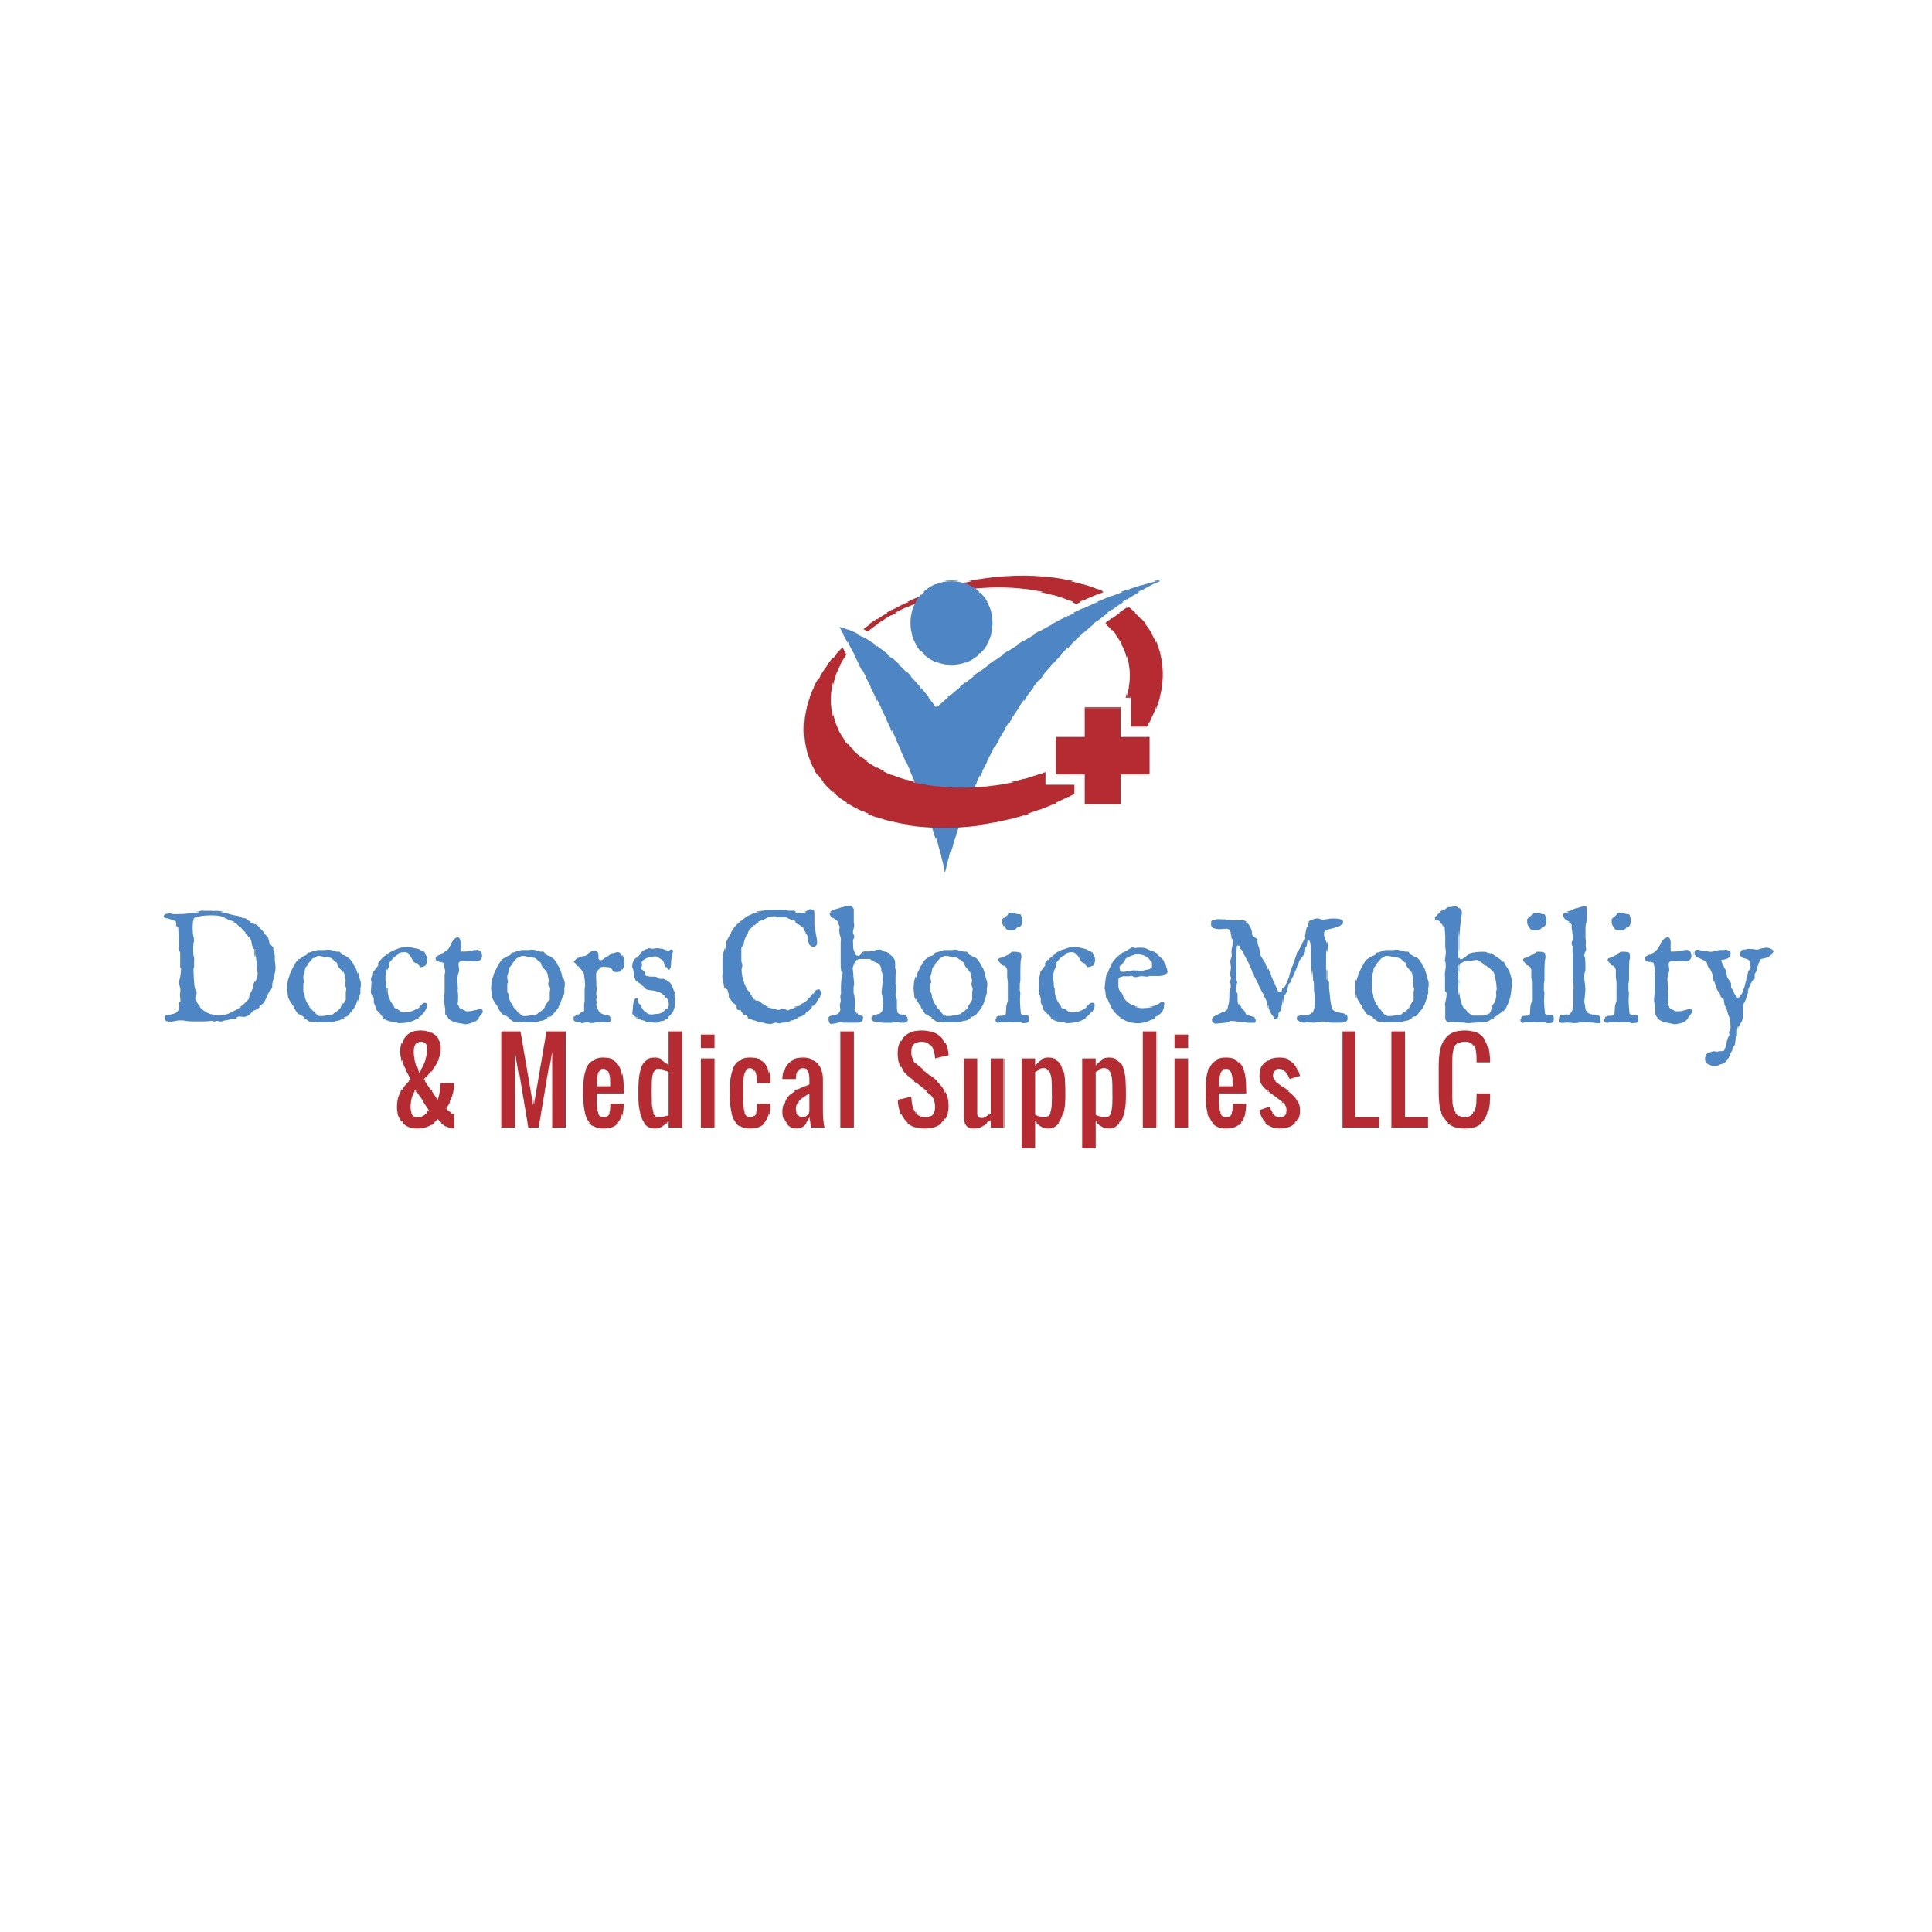 Doctors Choice Mobility & Medical Supplies